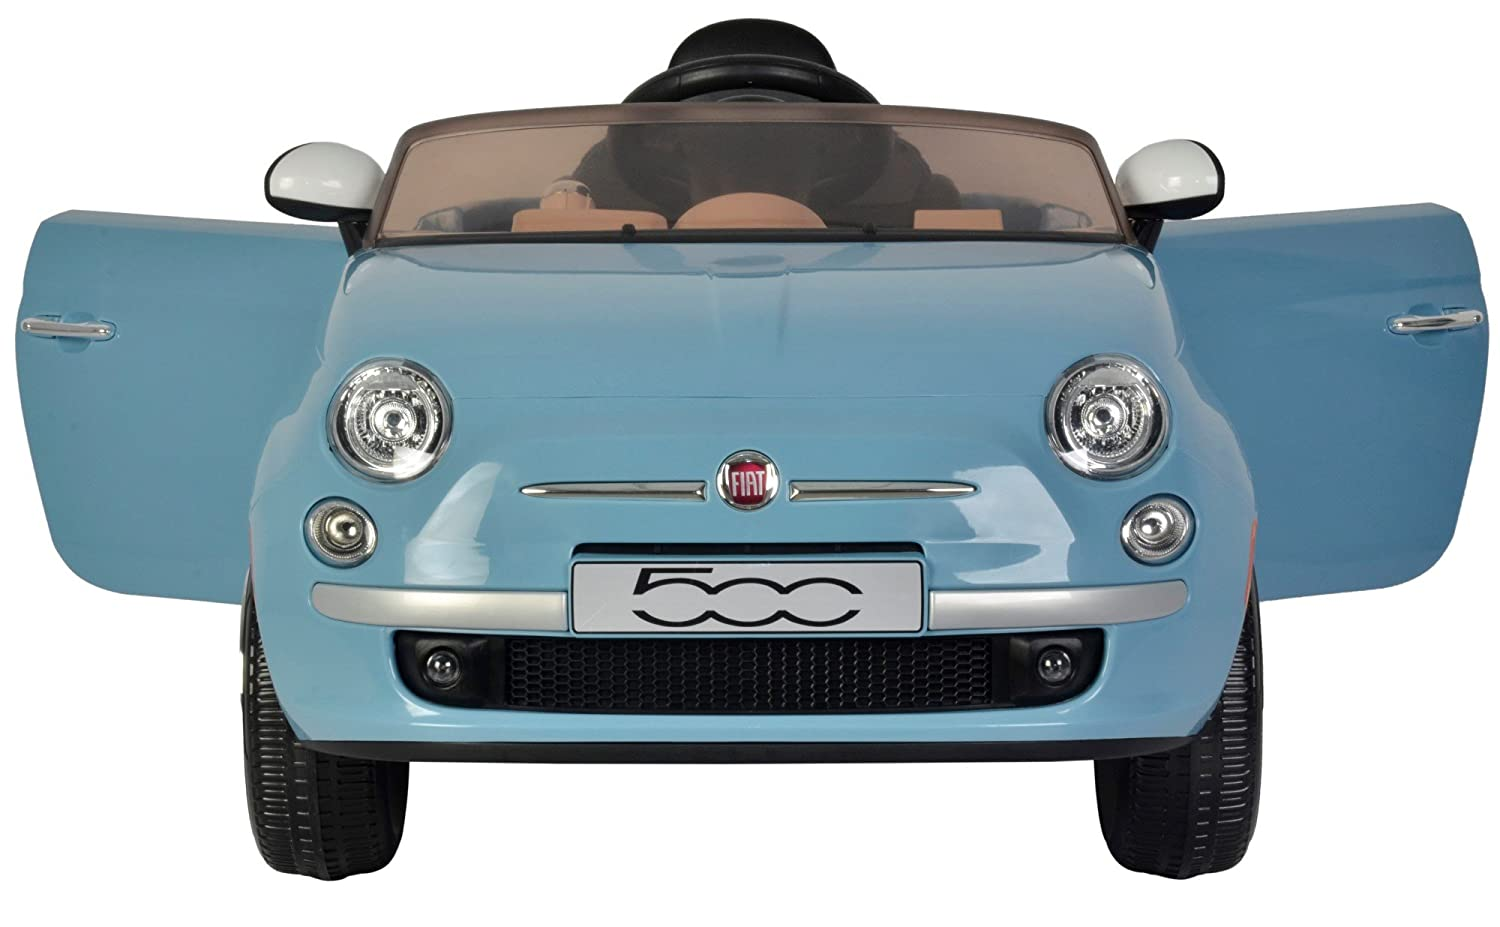 Toyhouse Officially License Fiat 500 Rechargeable Battery